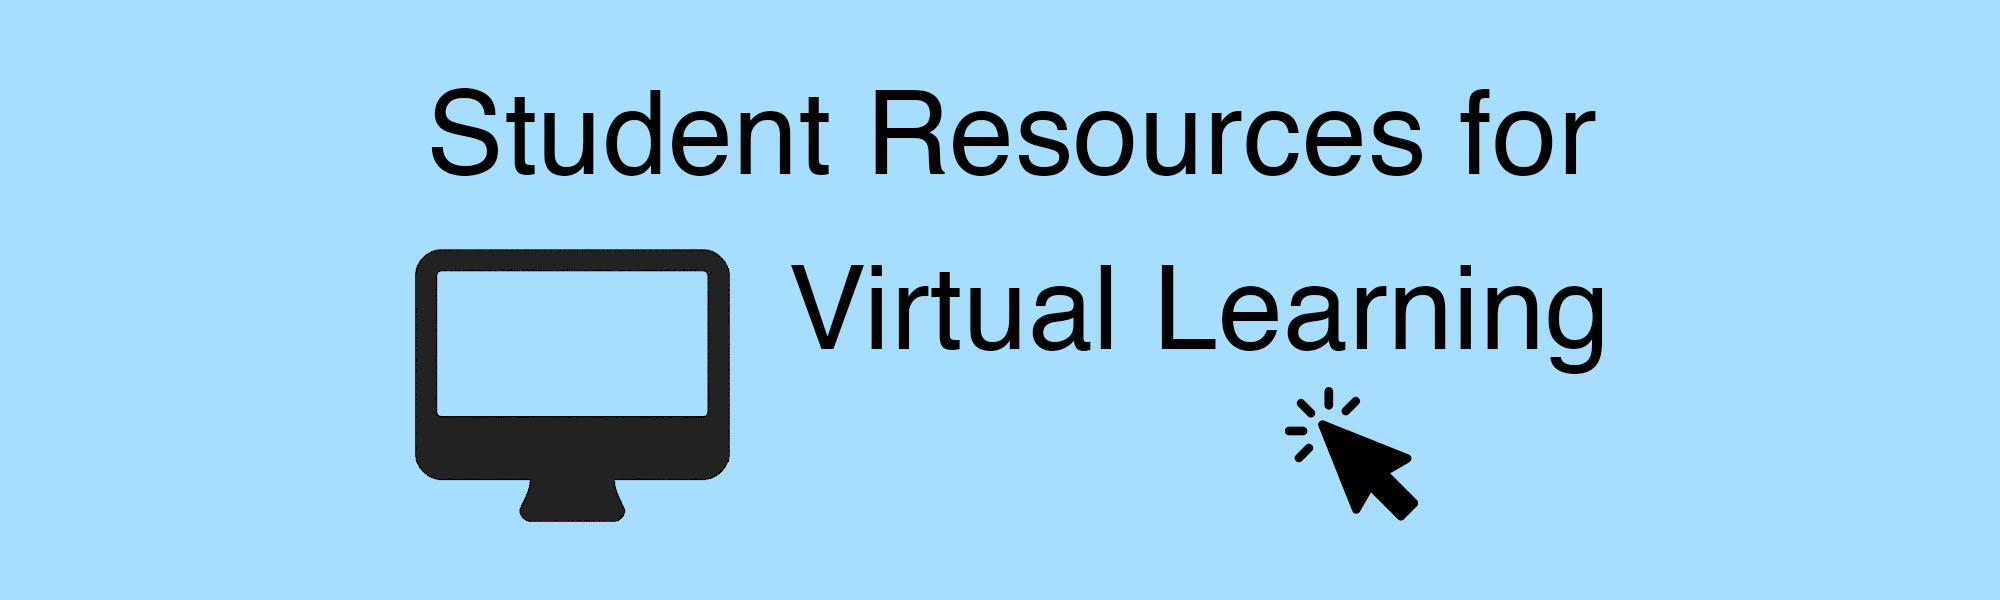 Student Resources for Virtual Learning From the SDSU Library